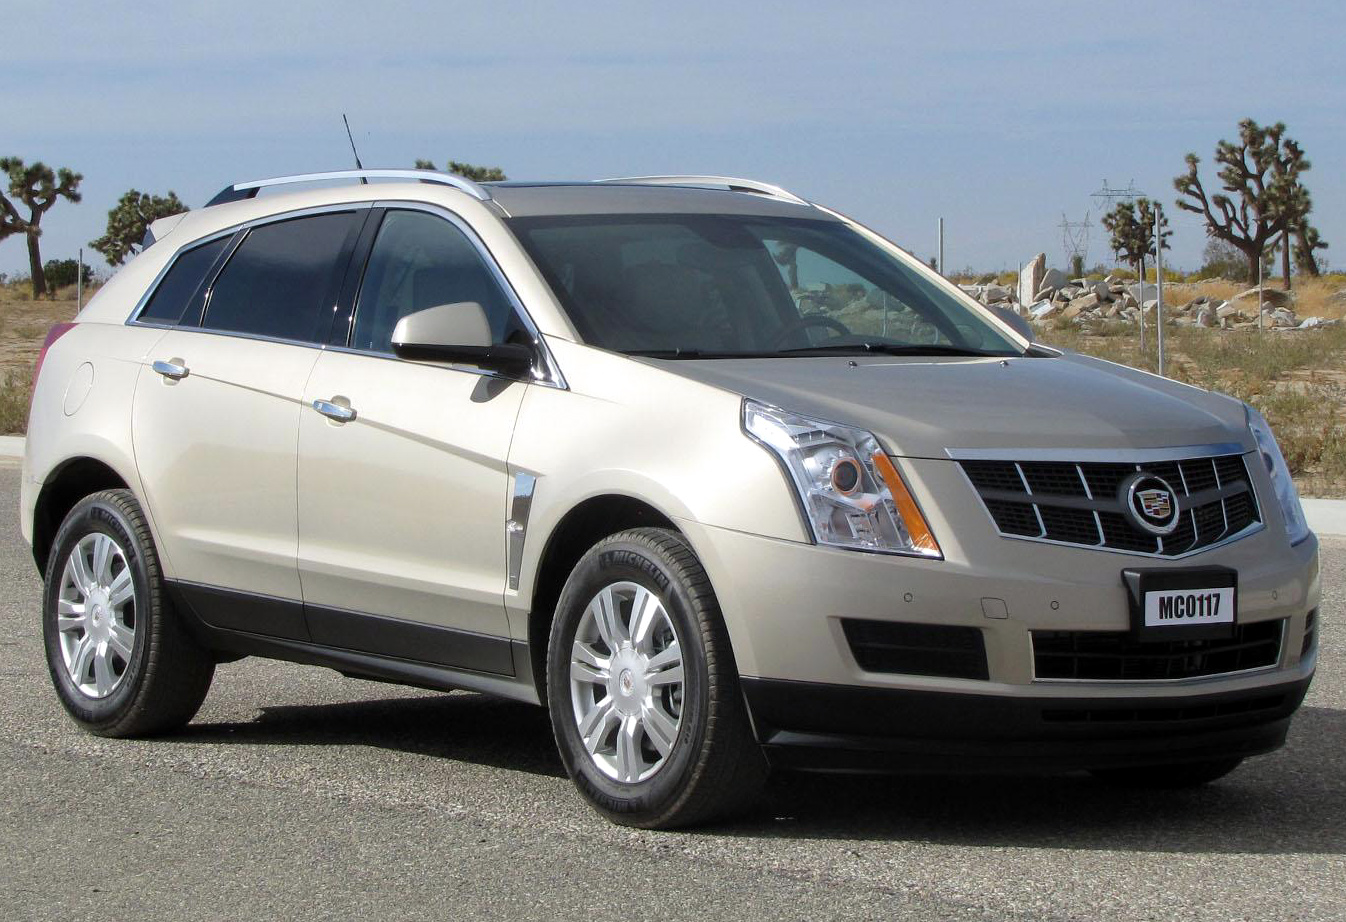 2010 cadillac srx ii pictures information and specs auto. Black Bedroom Furniture Sets. Home Design Ideas